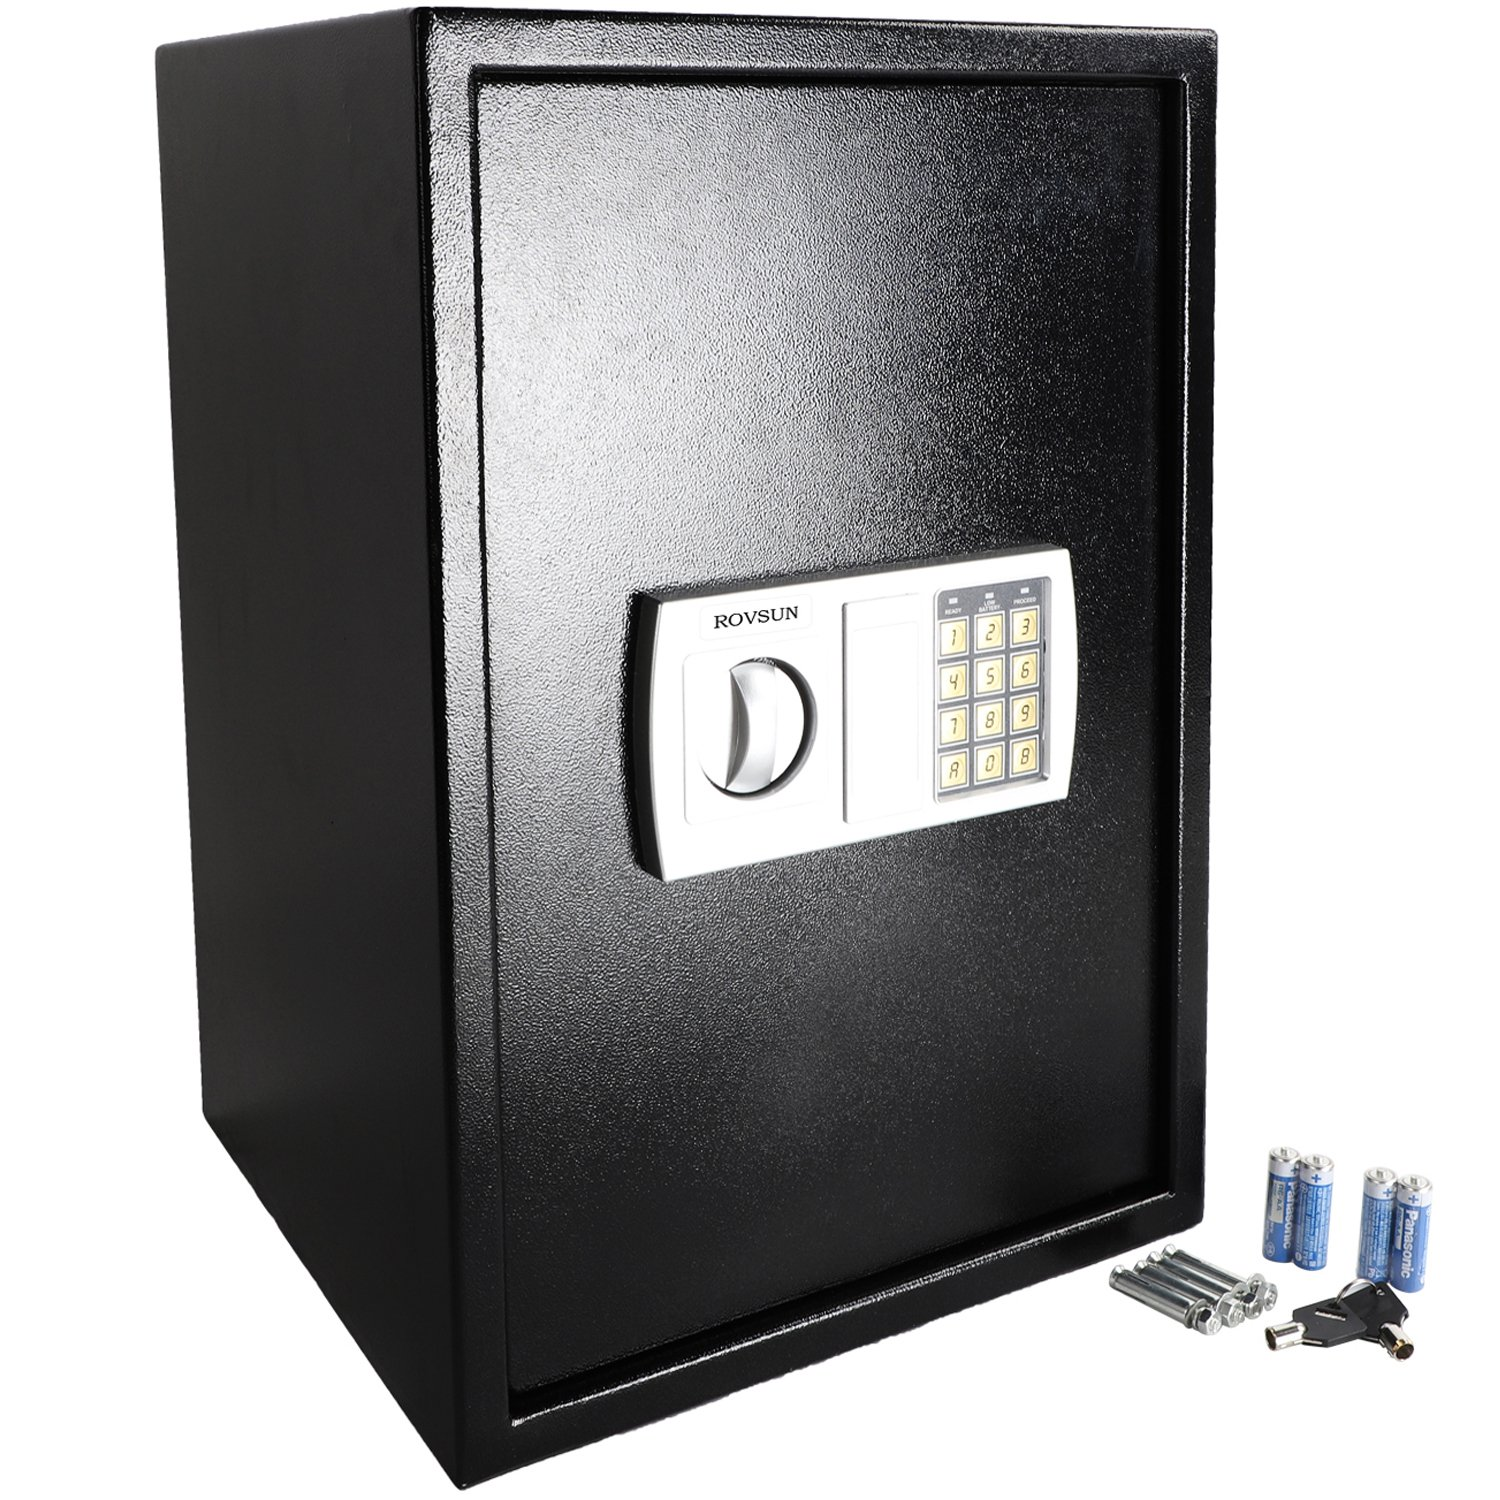 ROVSUN Digital Security Safe Box 1.8 CF Large Electronic Cabinet with Combination Lock &Solid Steel Construction, Great for Home Office Hotel Business Jewelry Money Passport, Included Battery